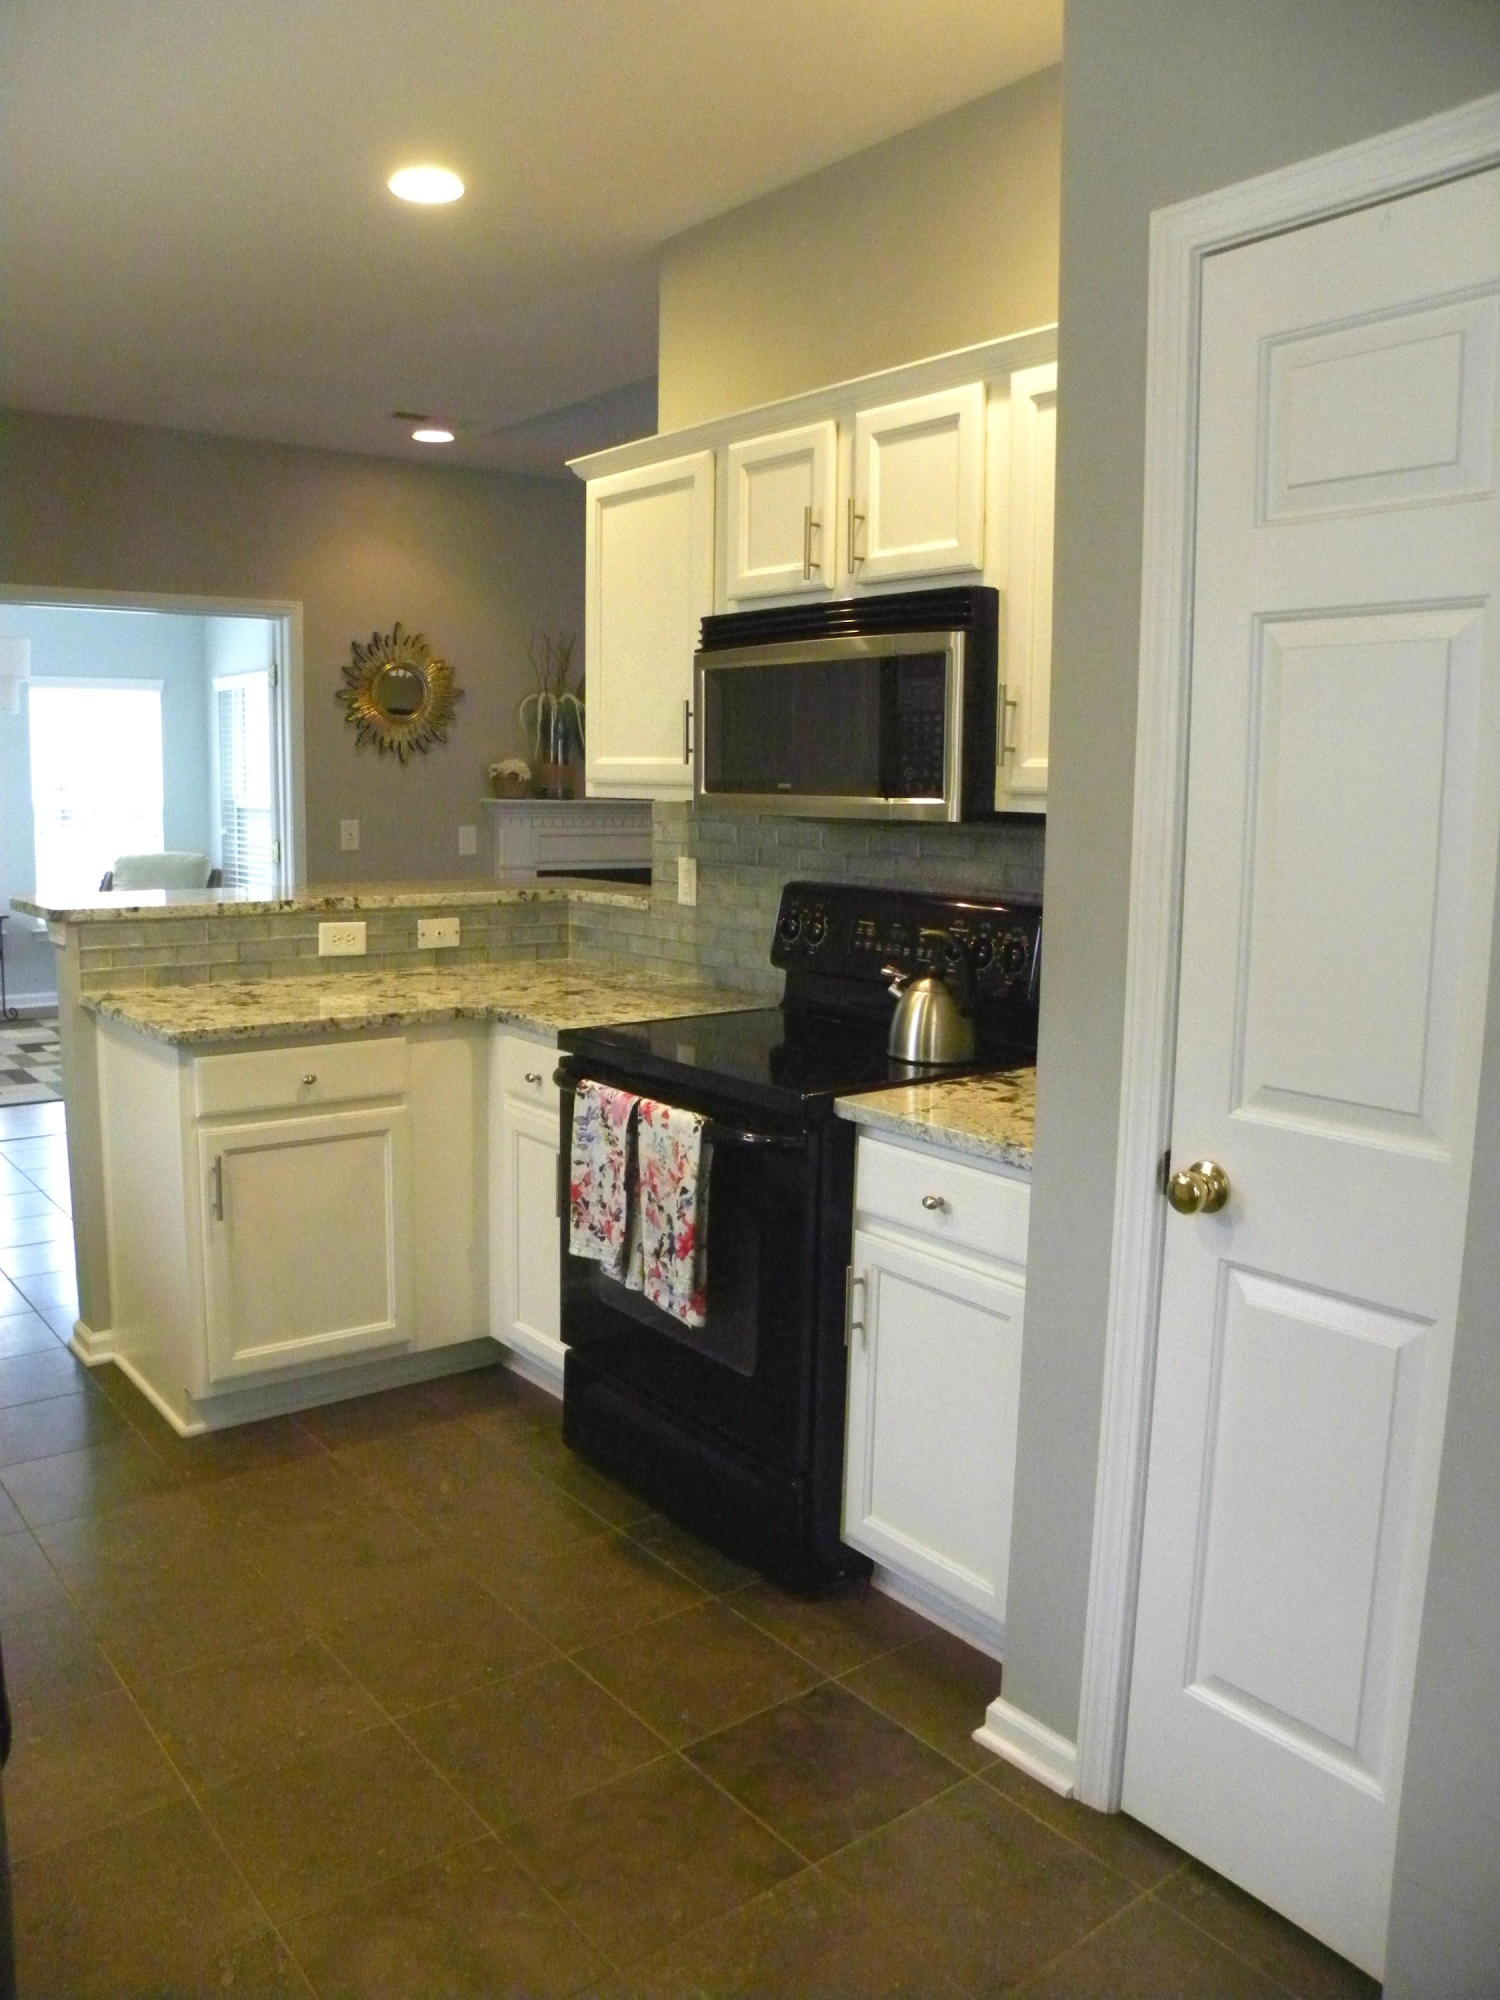 Home for sale 2818 Summertrees Boulevard, Summertrees, Johns Island, SC